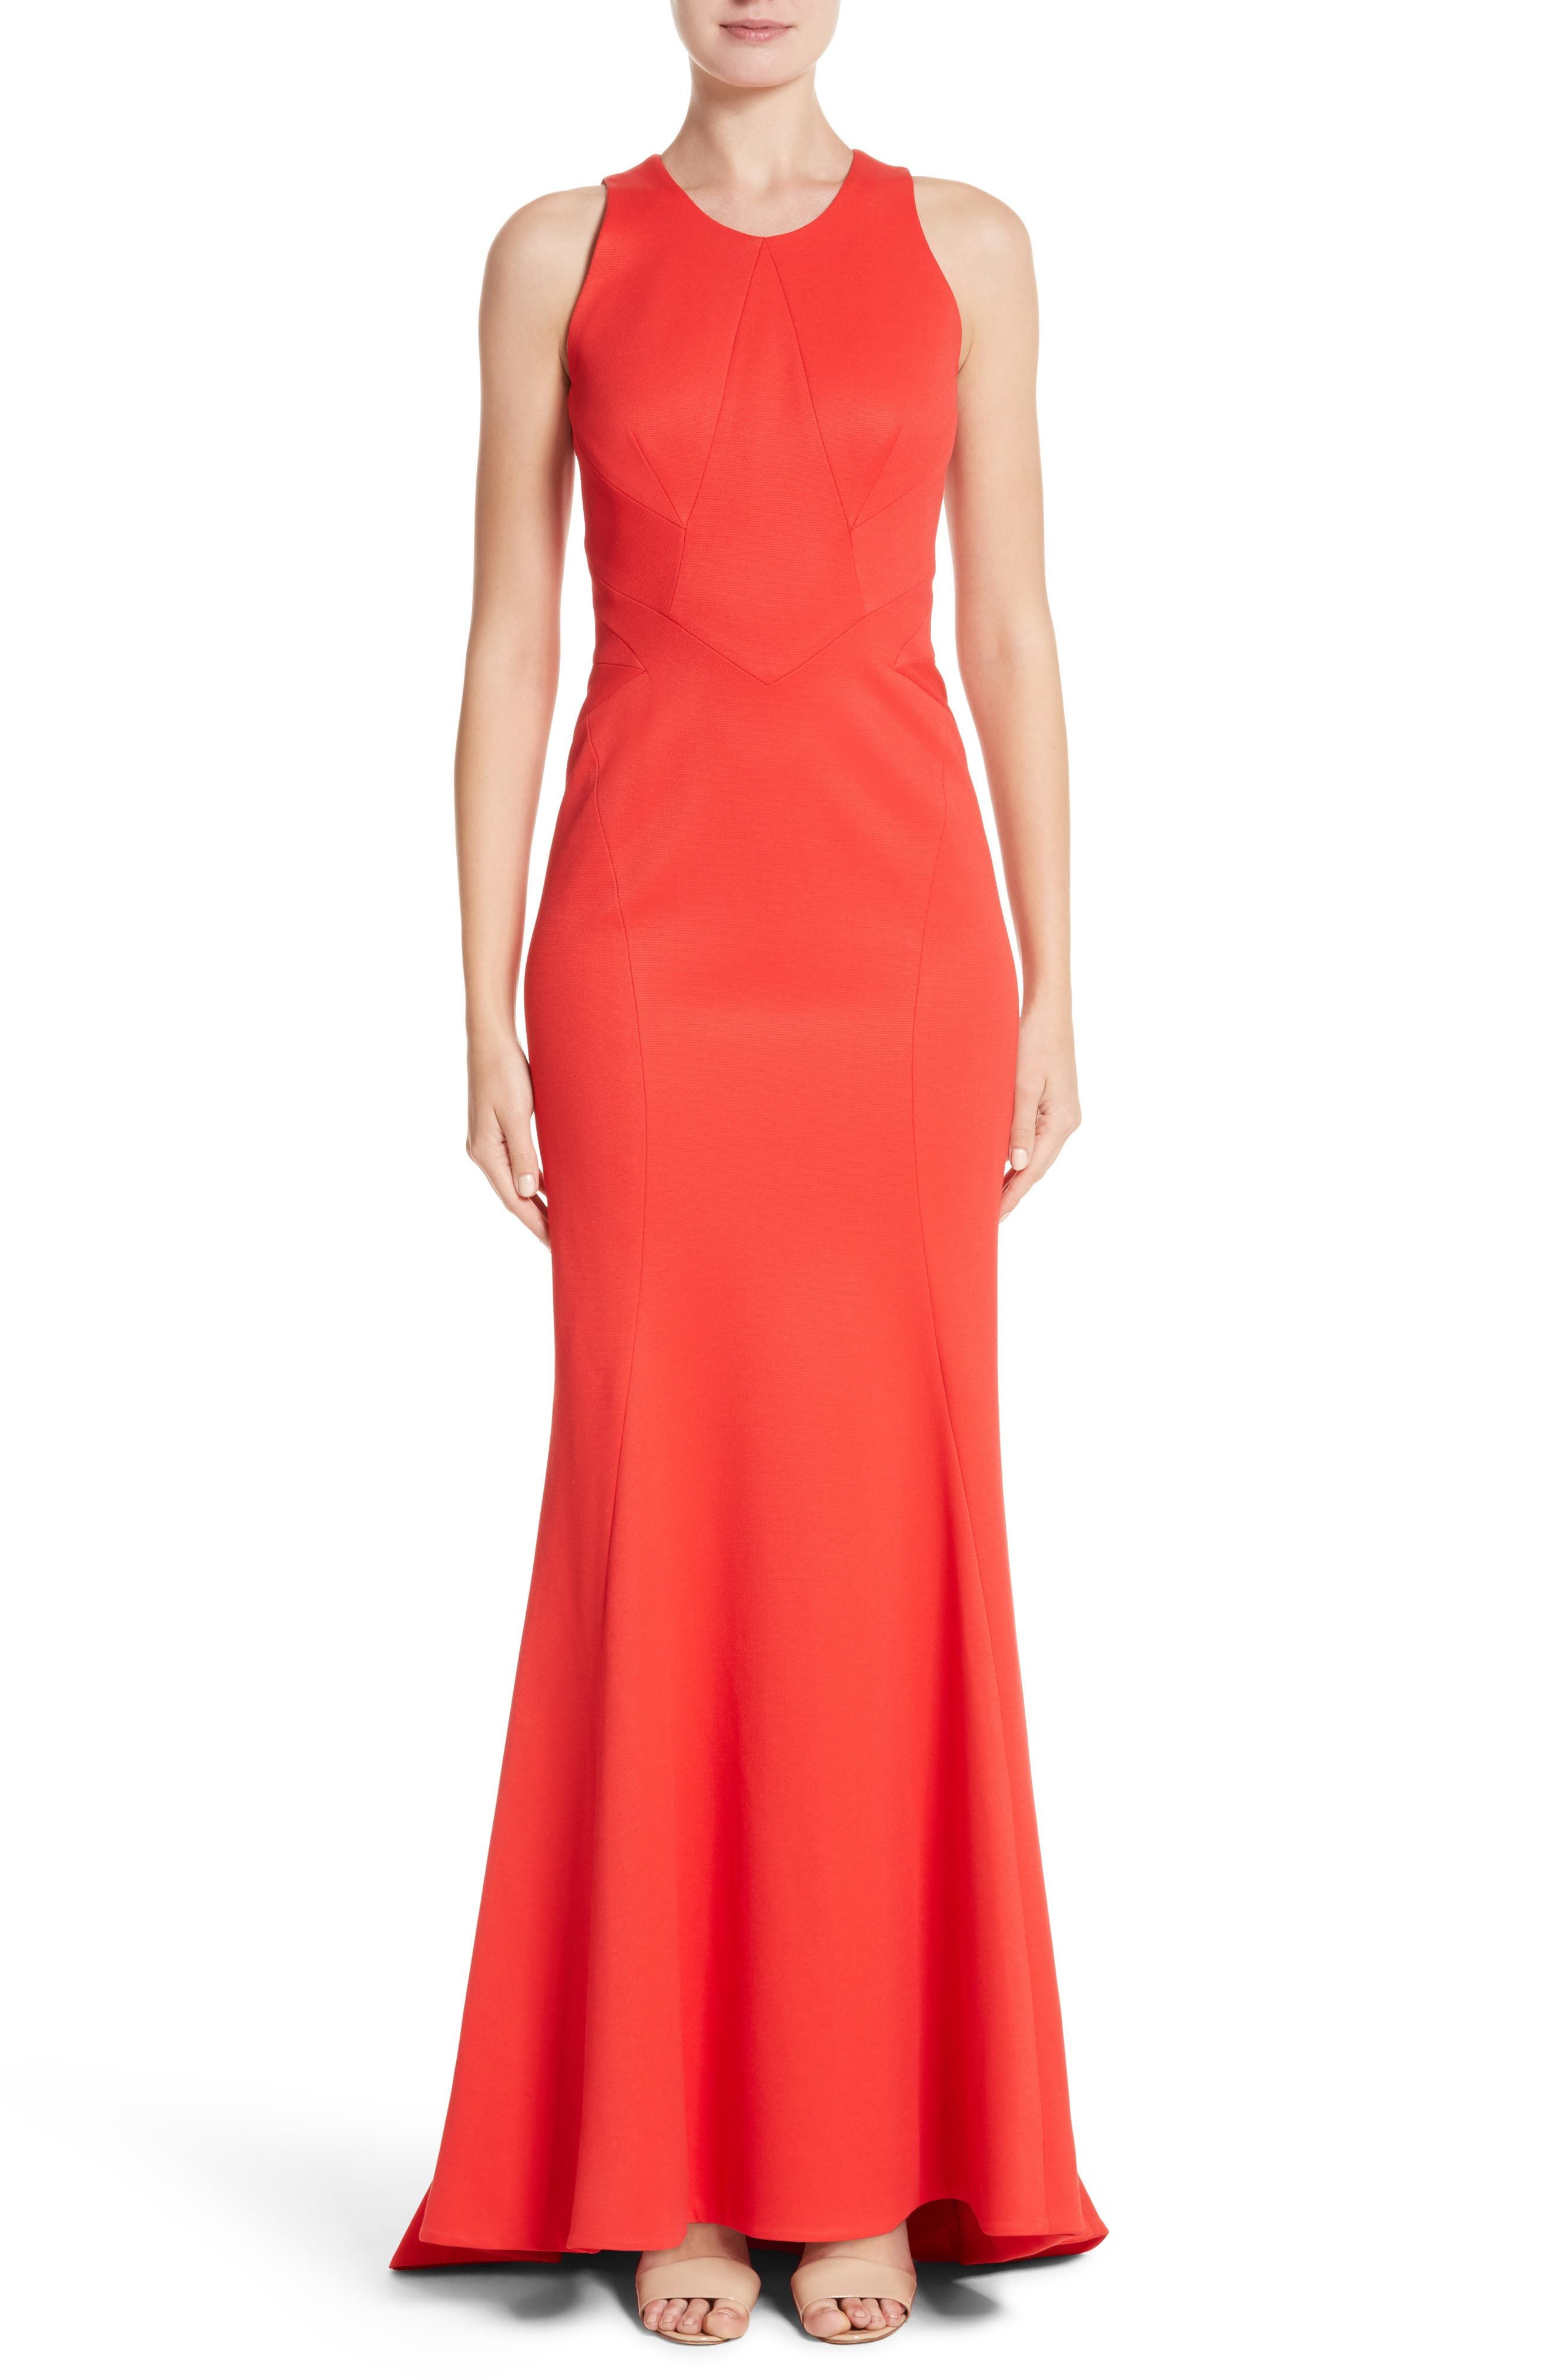 Alternate Image 1 Selected - Zac Posen Structured Knit Trumpet Gown